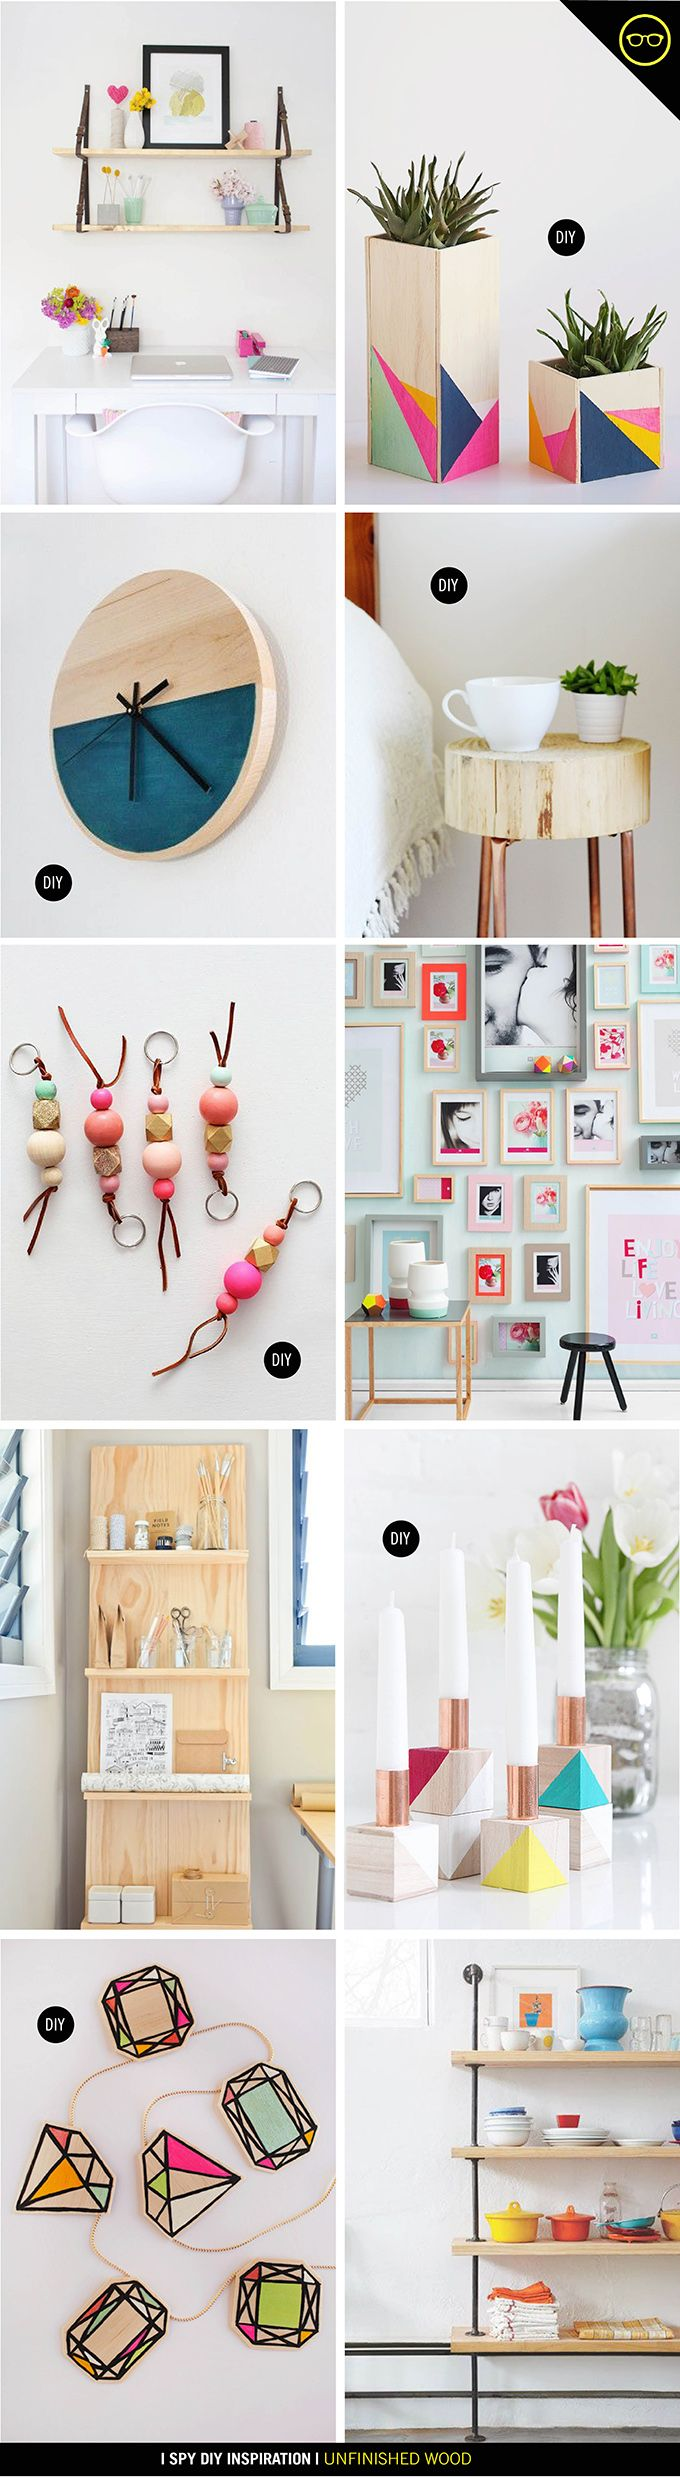 INSPIRATION | Unfinished Wood | I SPY DIY